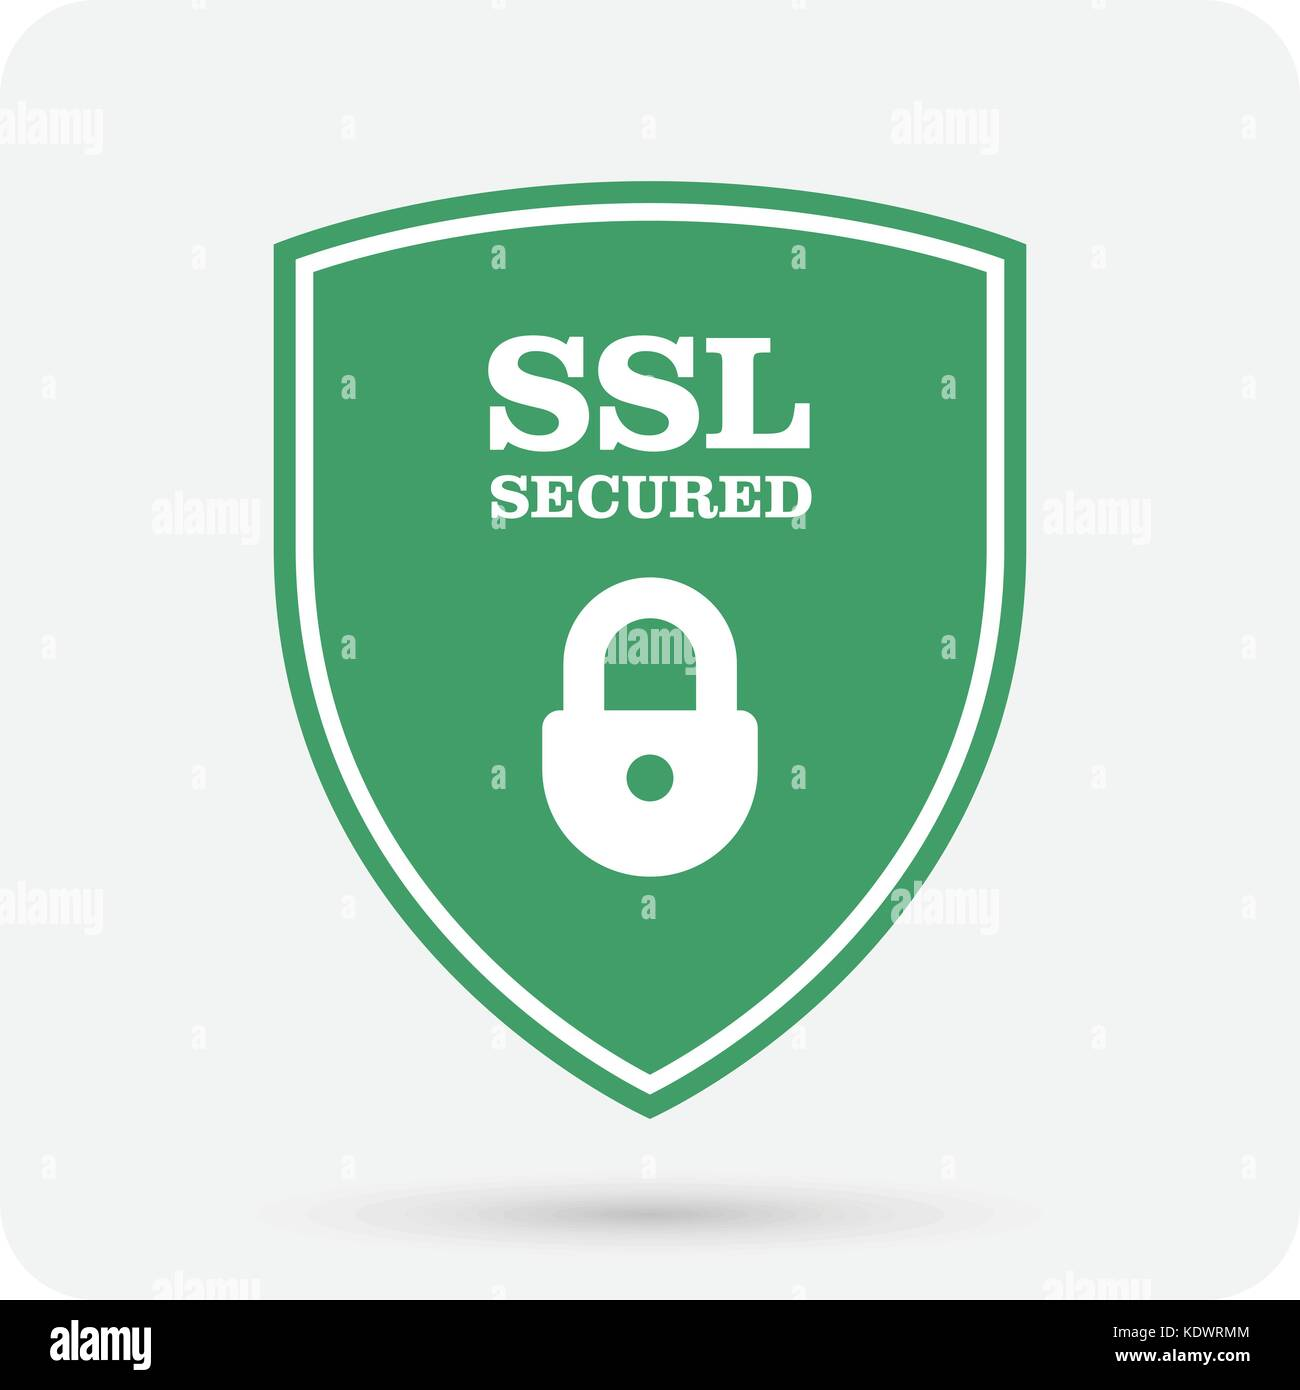 Ssl certificate shield with padlock secure website emblem stock ssl certificate shield with padlock secure website emblem 1betcityfo Image collections